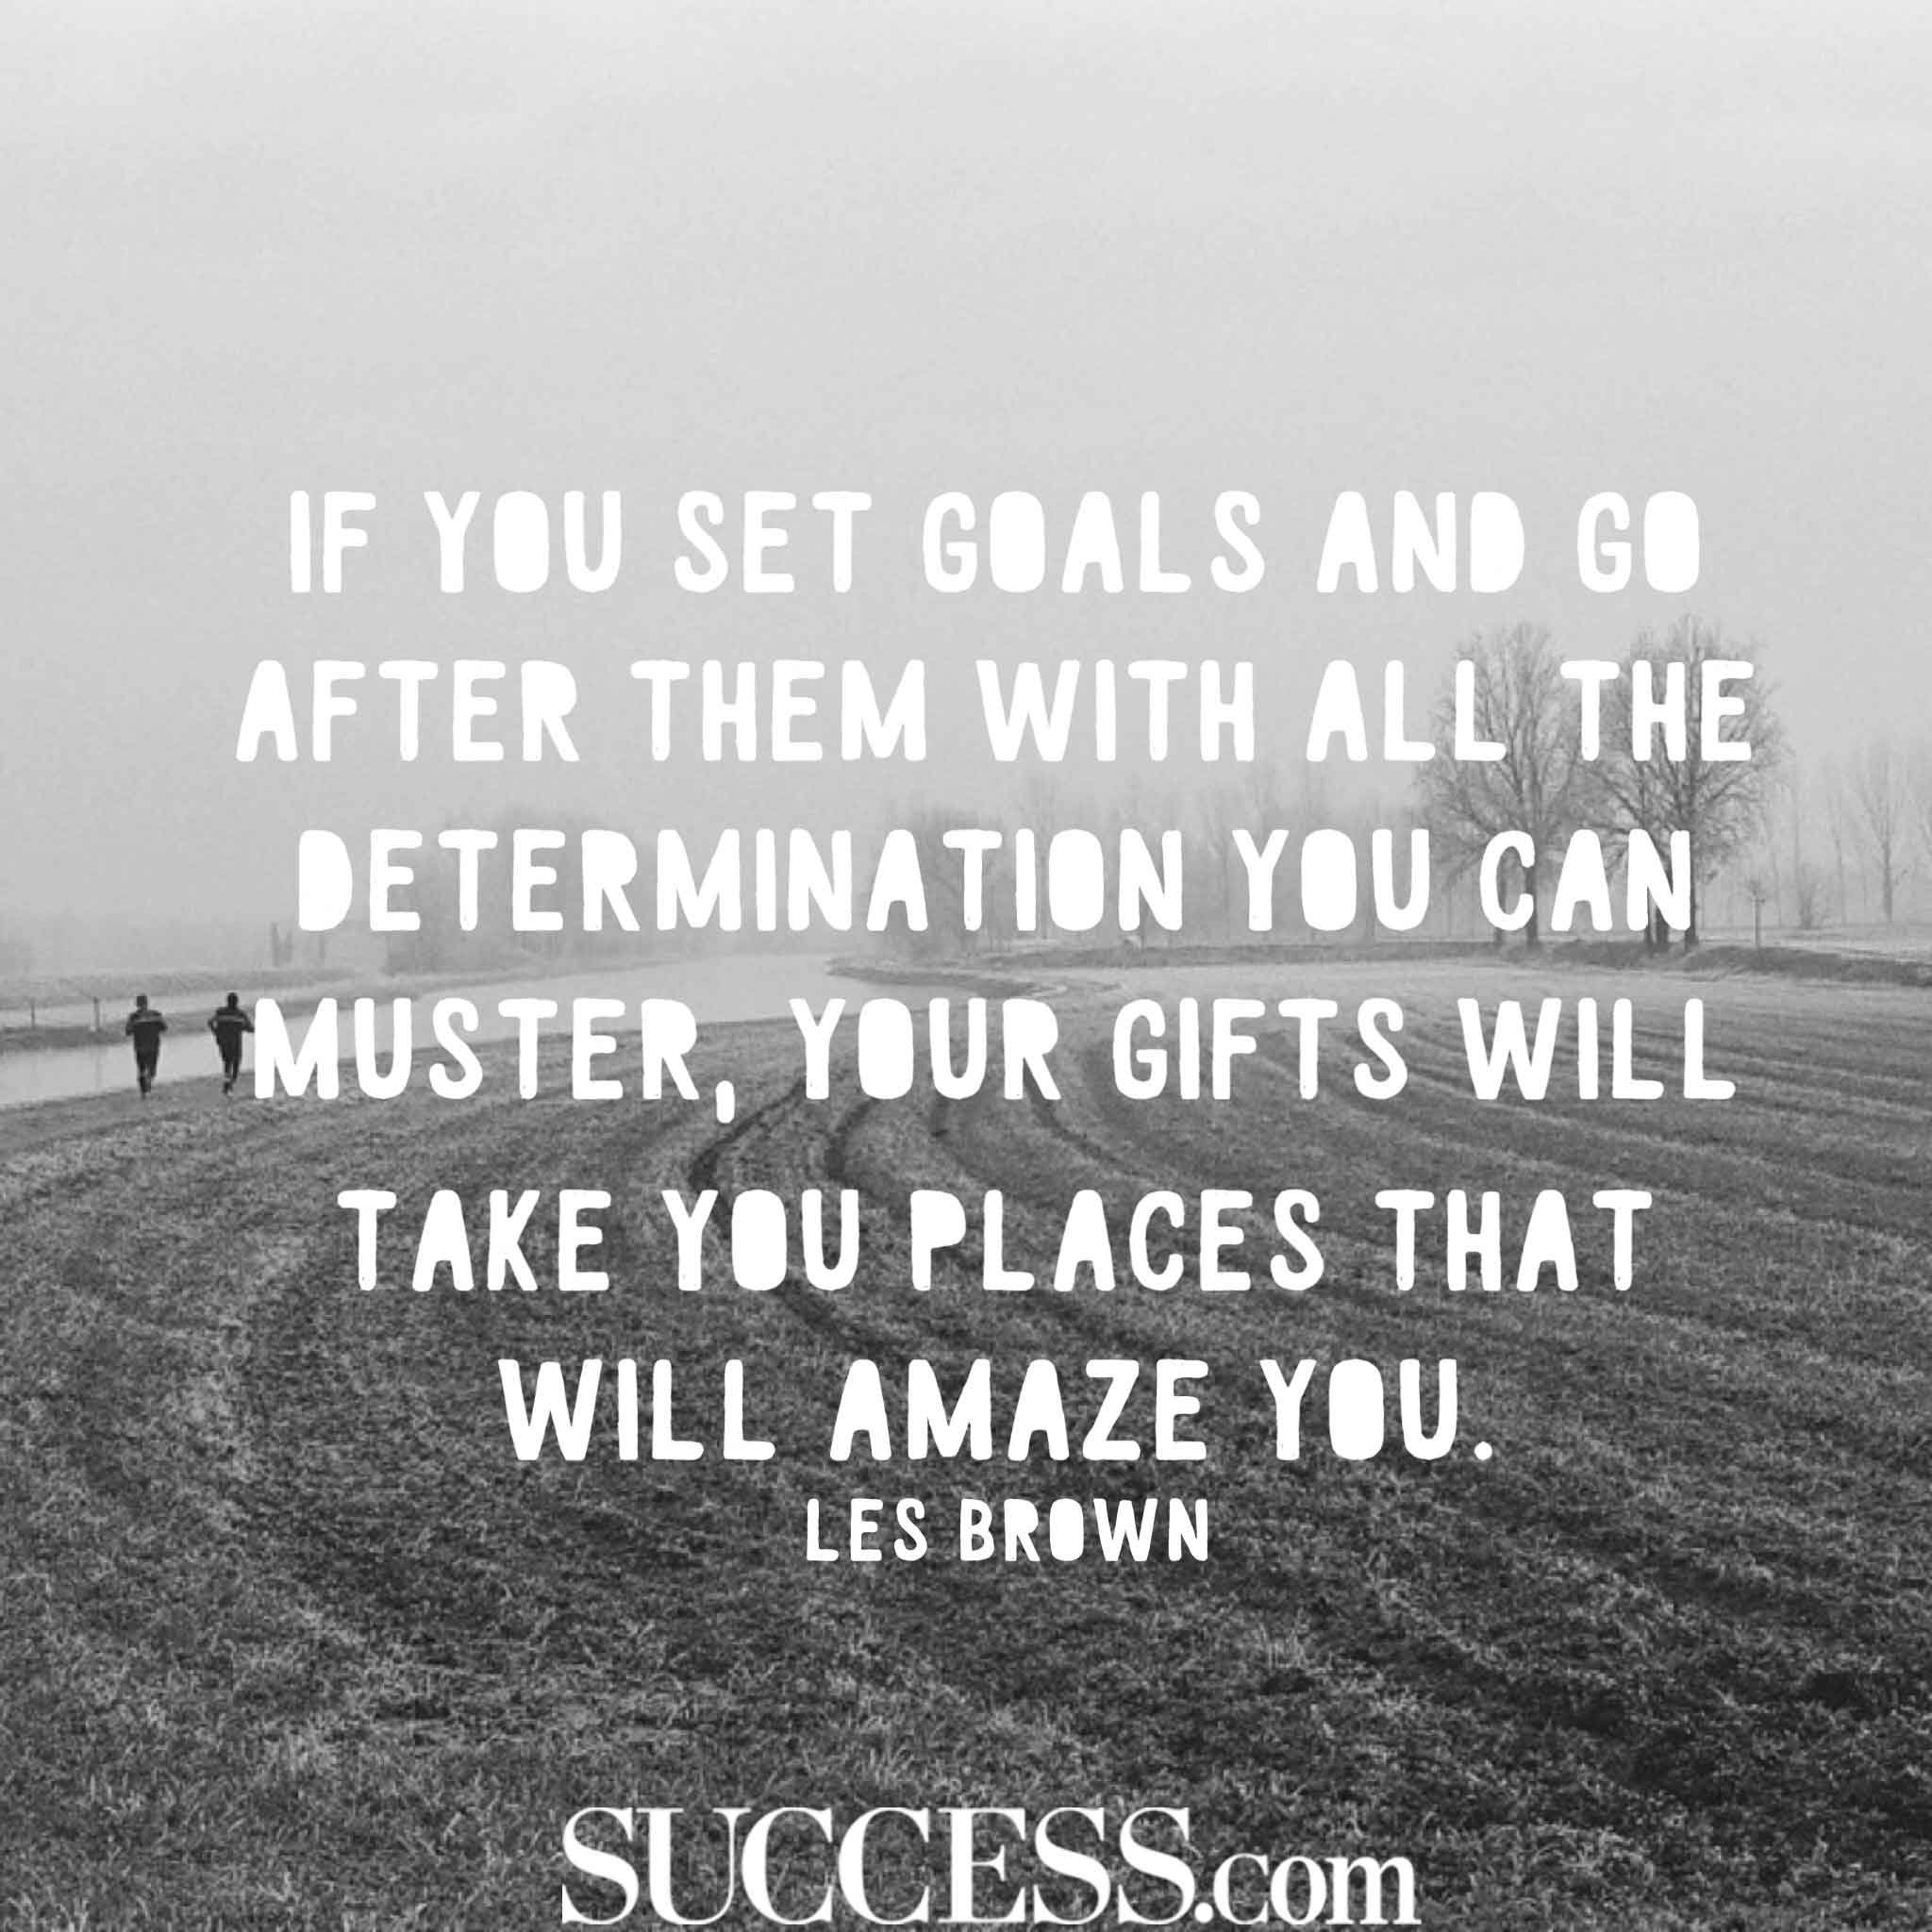 Inspirational Goal Quotes 18 Motivational Quotes About Successful Goal Setting Inspirational Goal Quotes